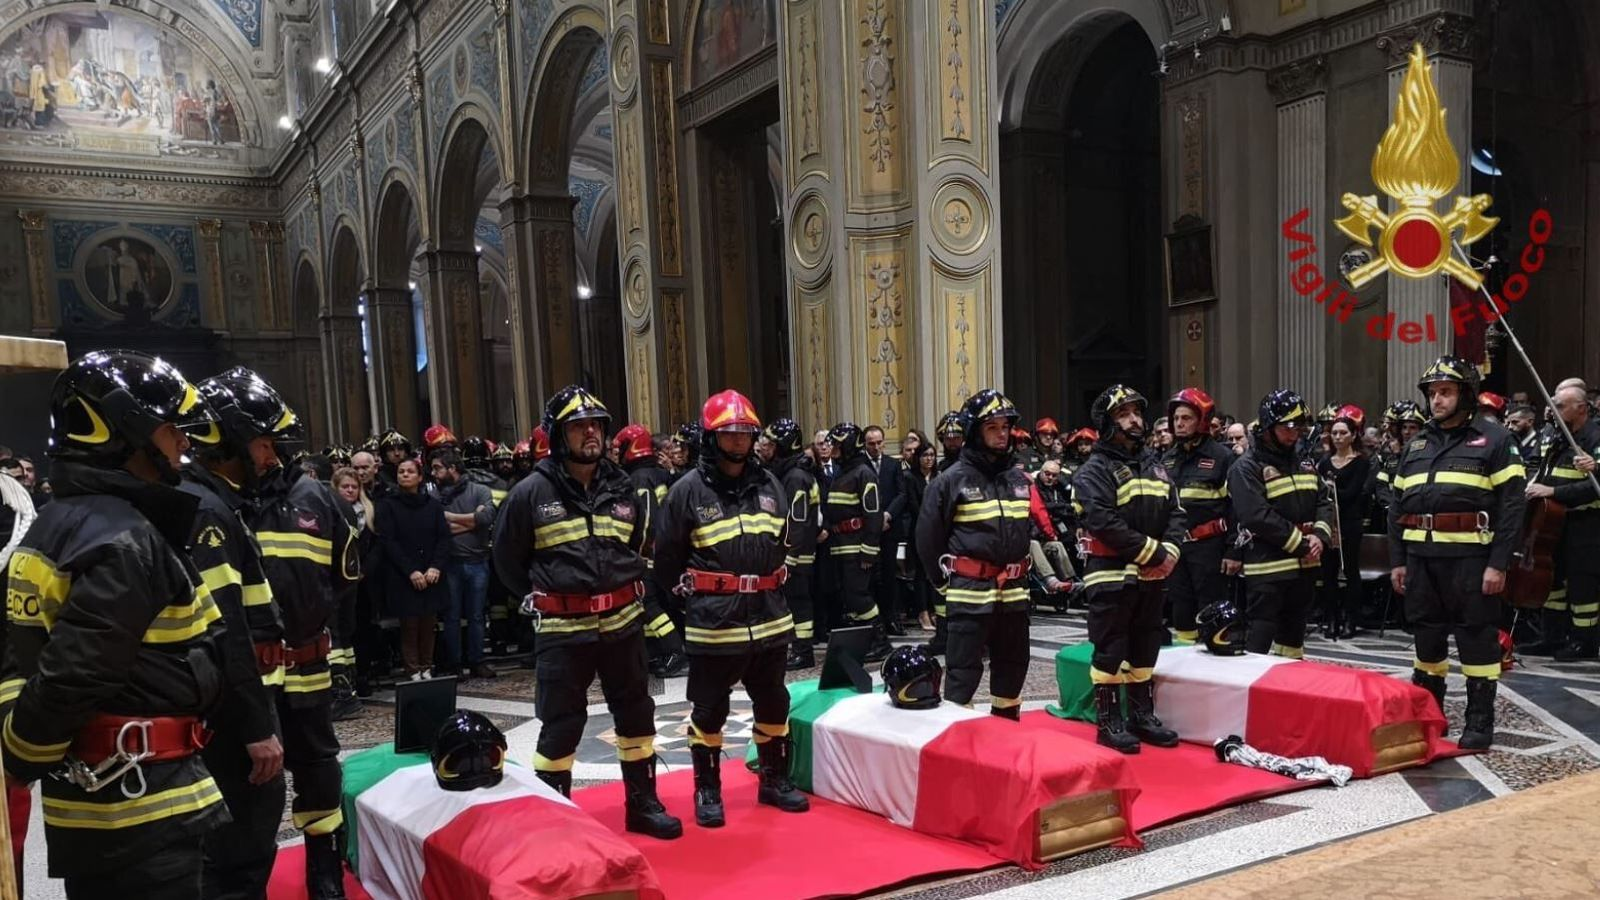 Italy: Man confesses to causing deaths of three firefighters in insurance scam